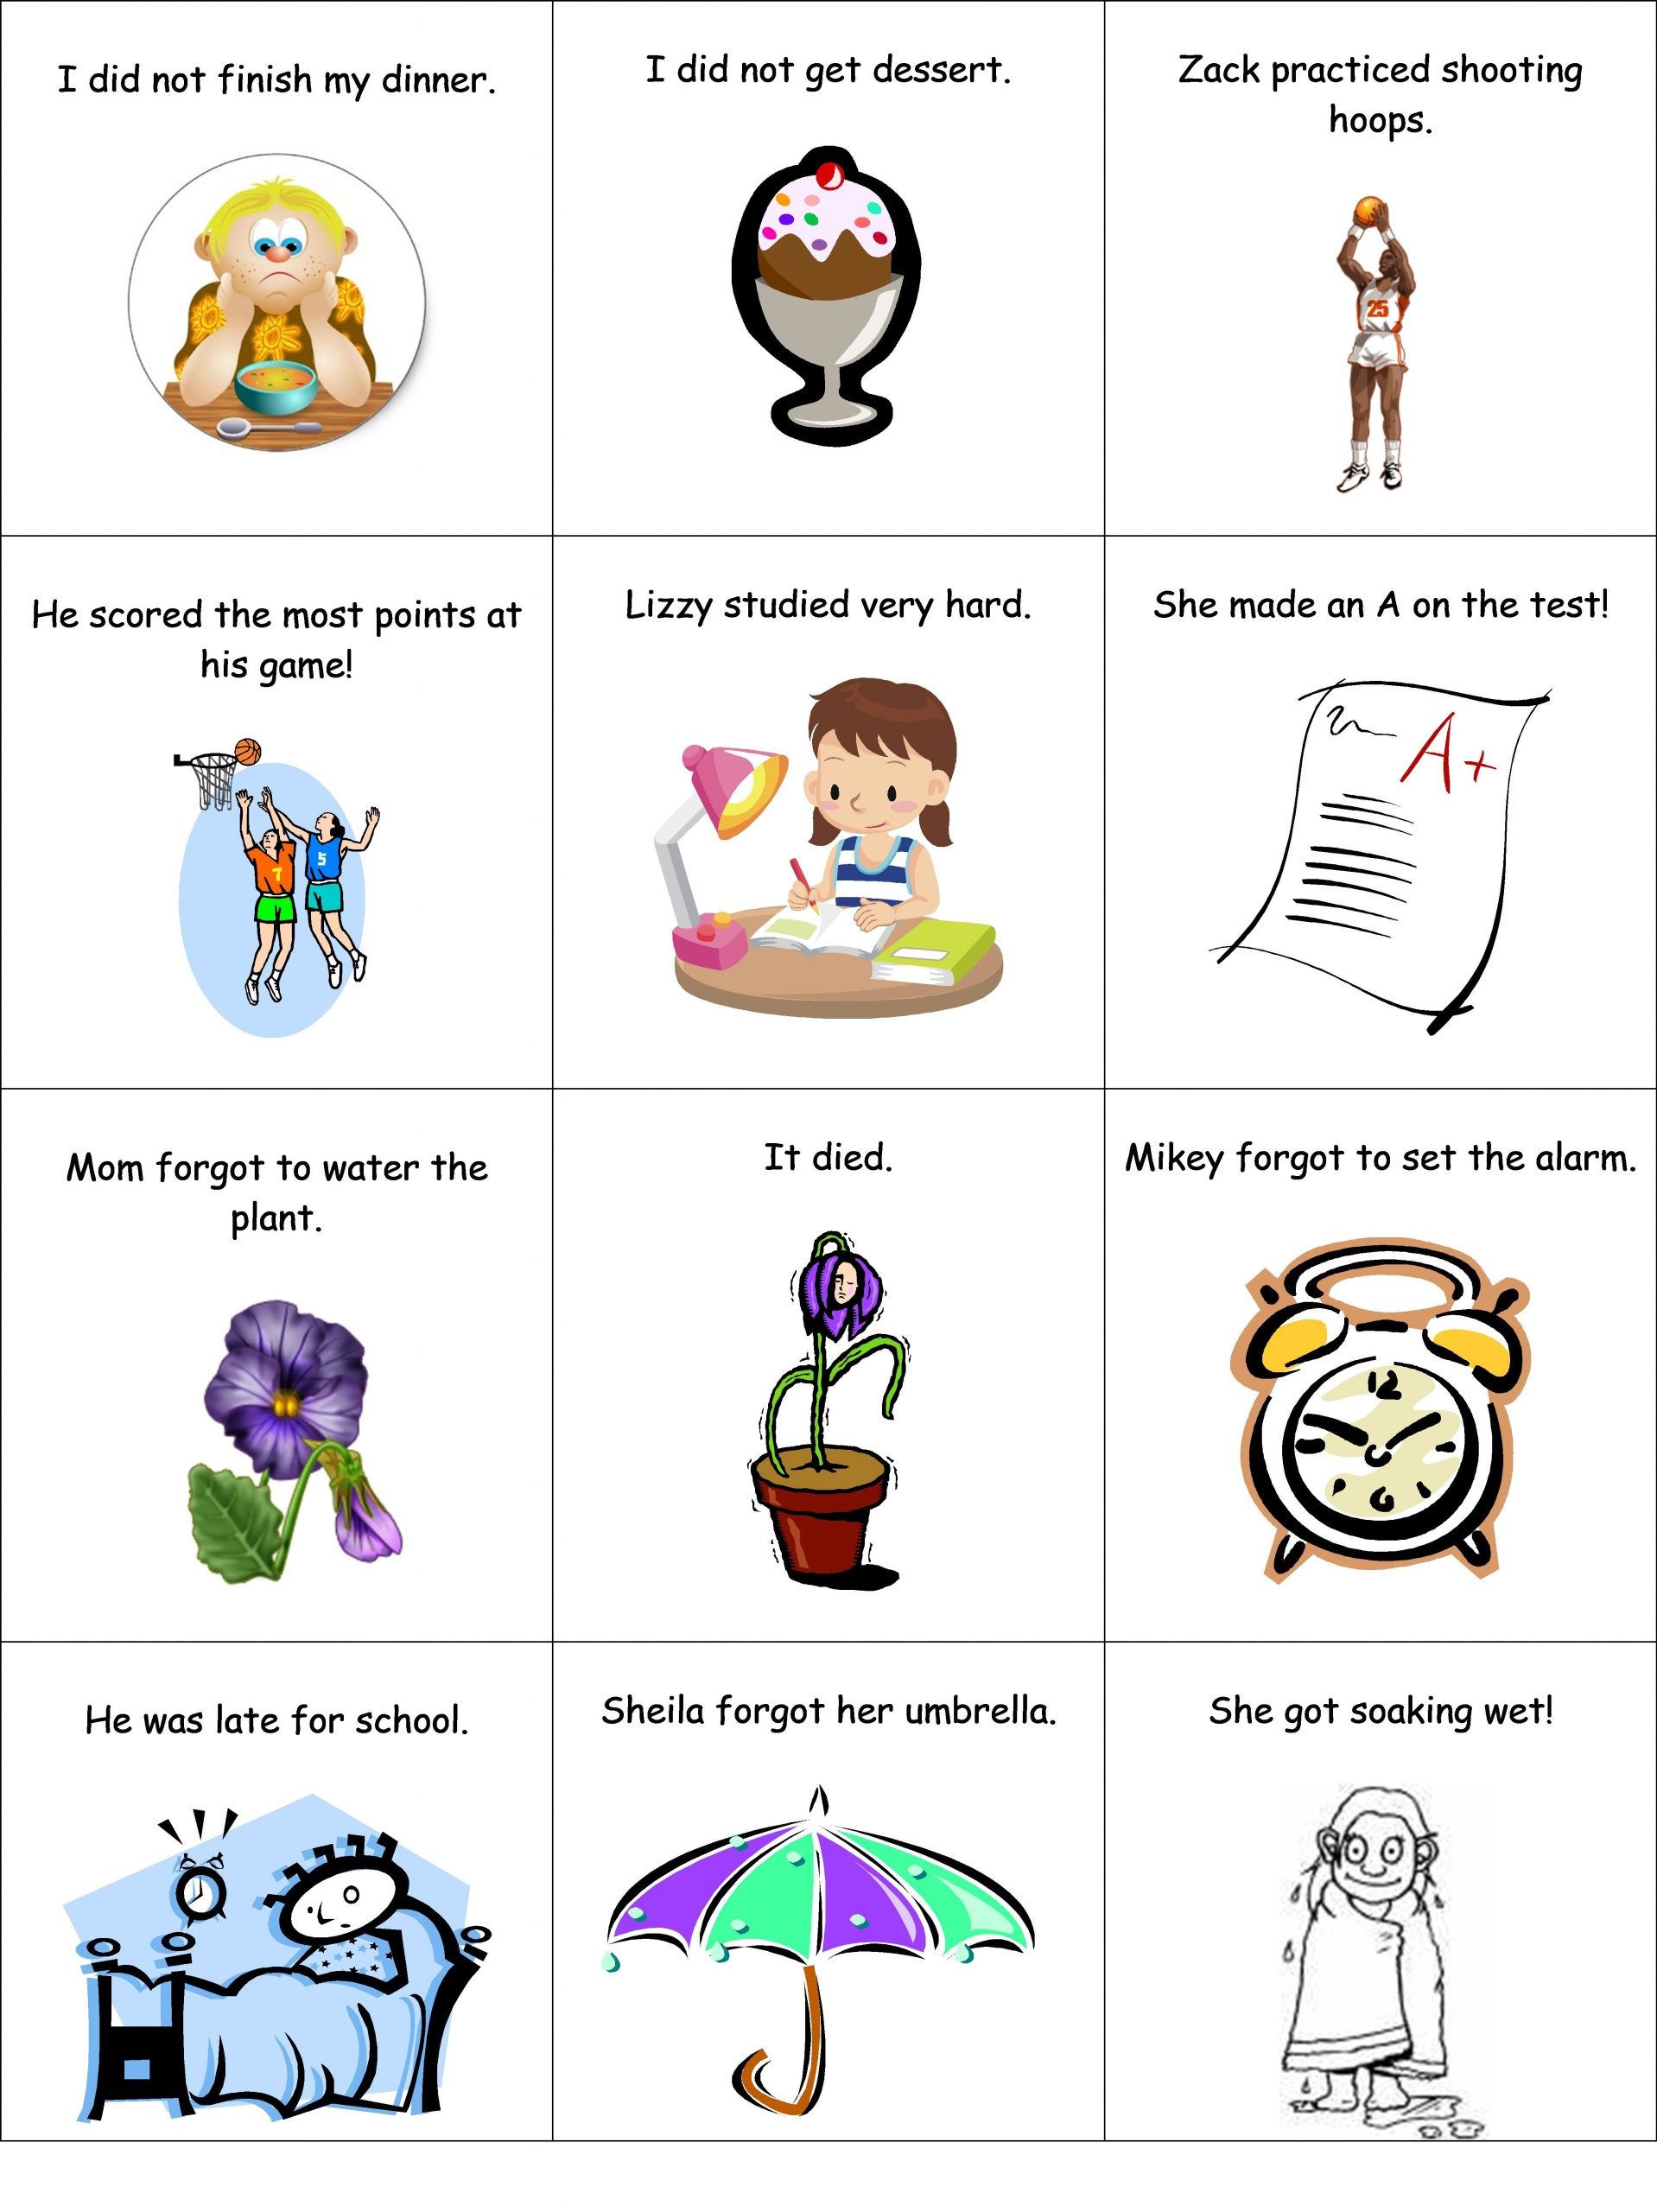 Sequencing Worksheet 2nd Grade Part 1 Of 2 Cause and Effect Matching Game